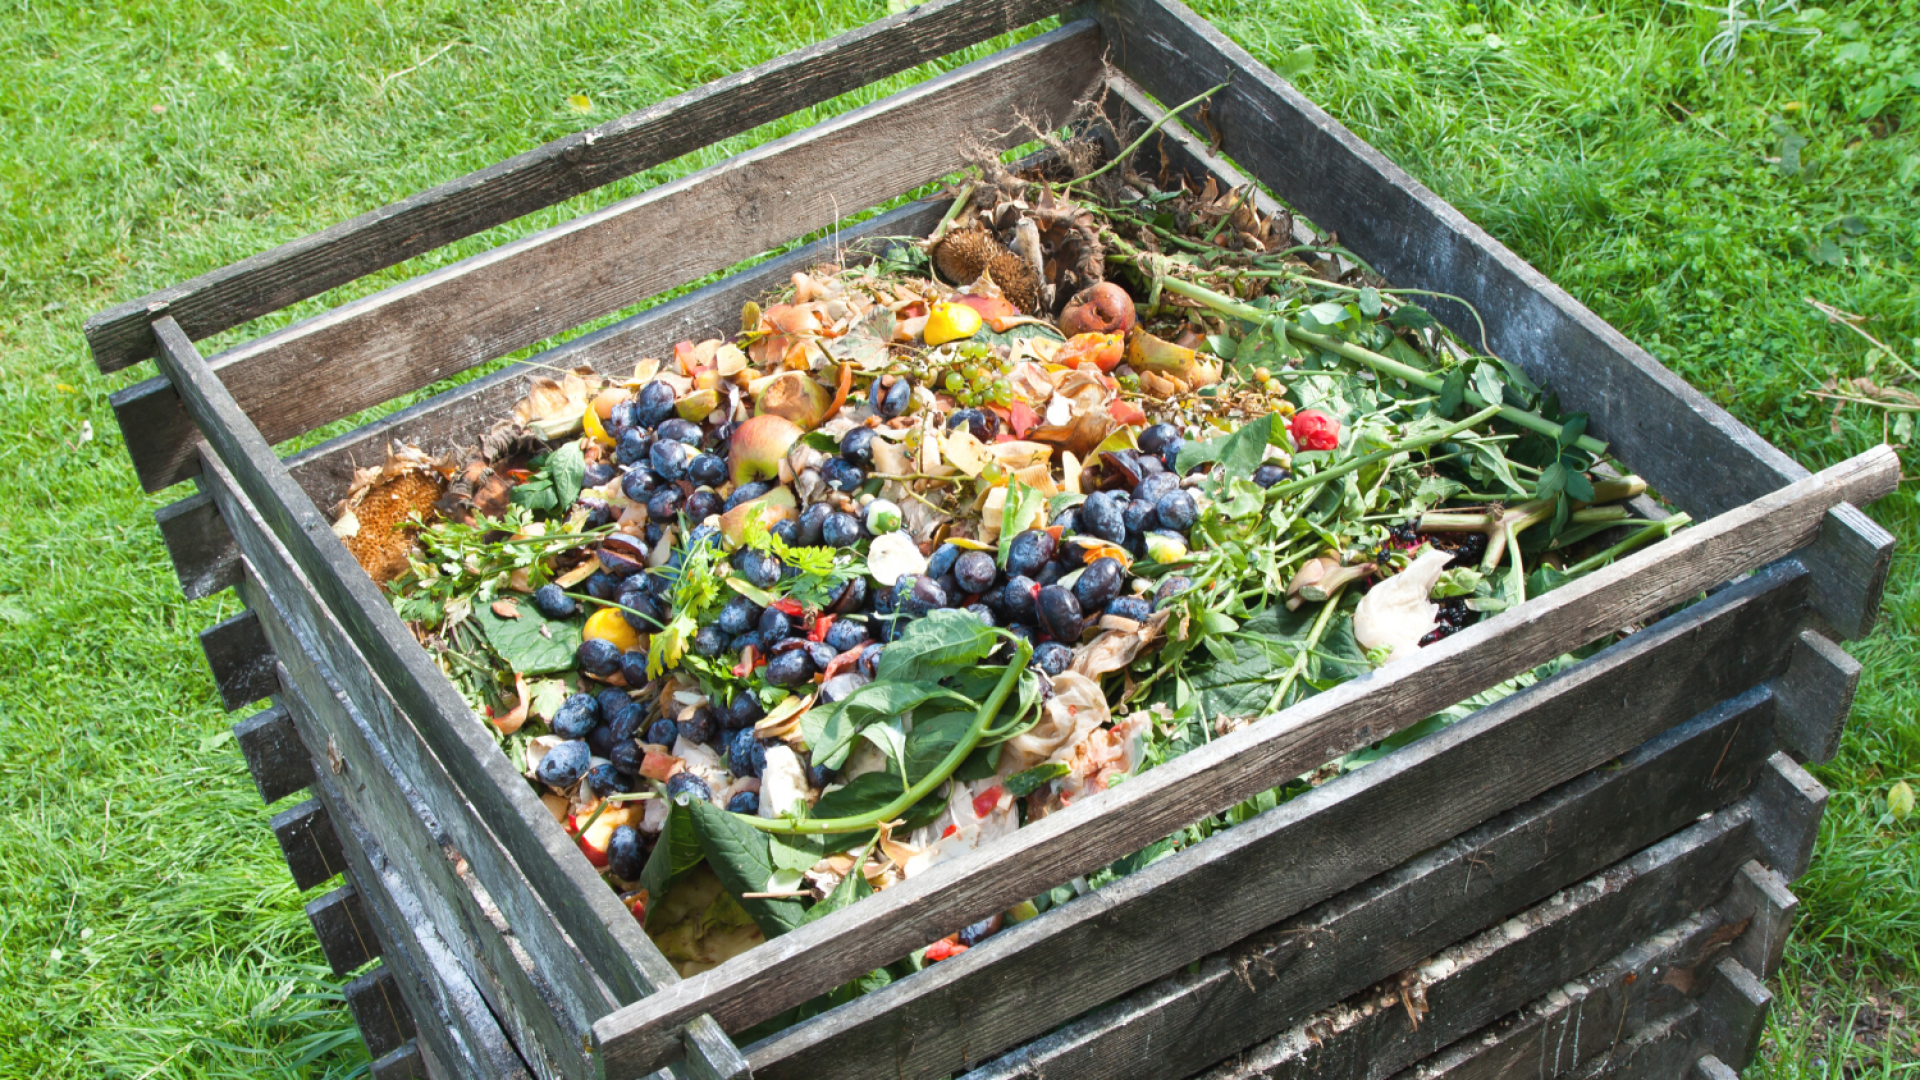 How To Move A Compost Bin: All Of Your Questions Answered